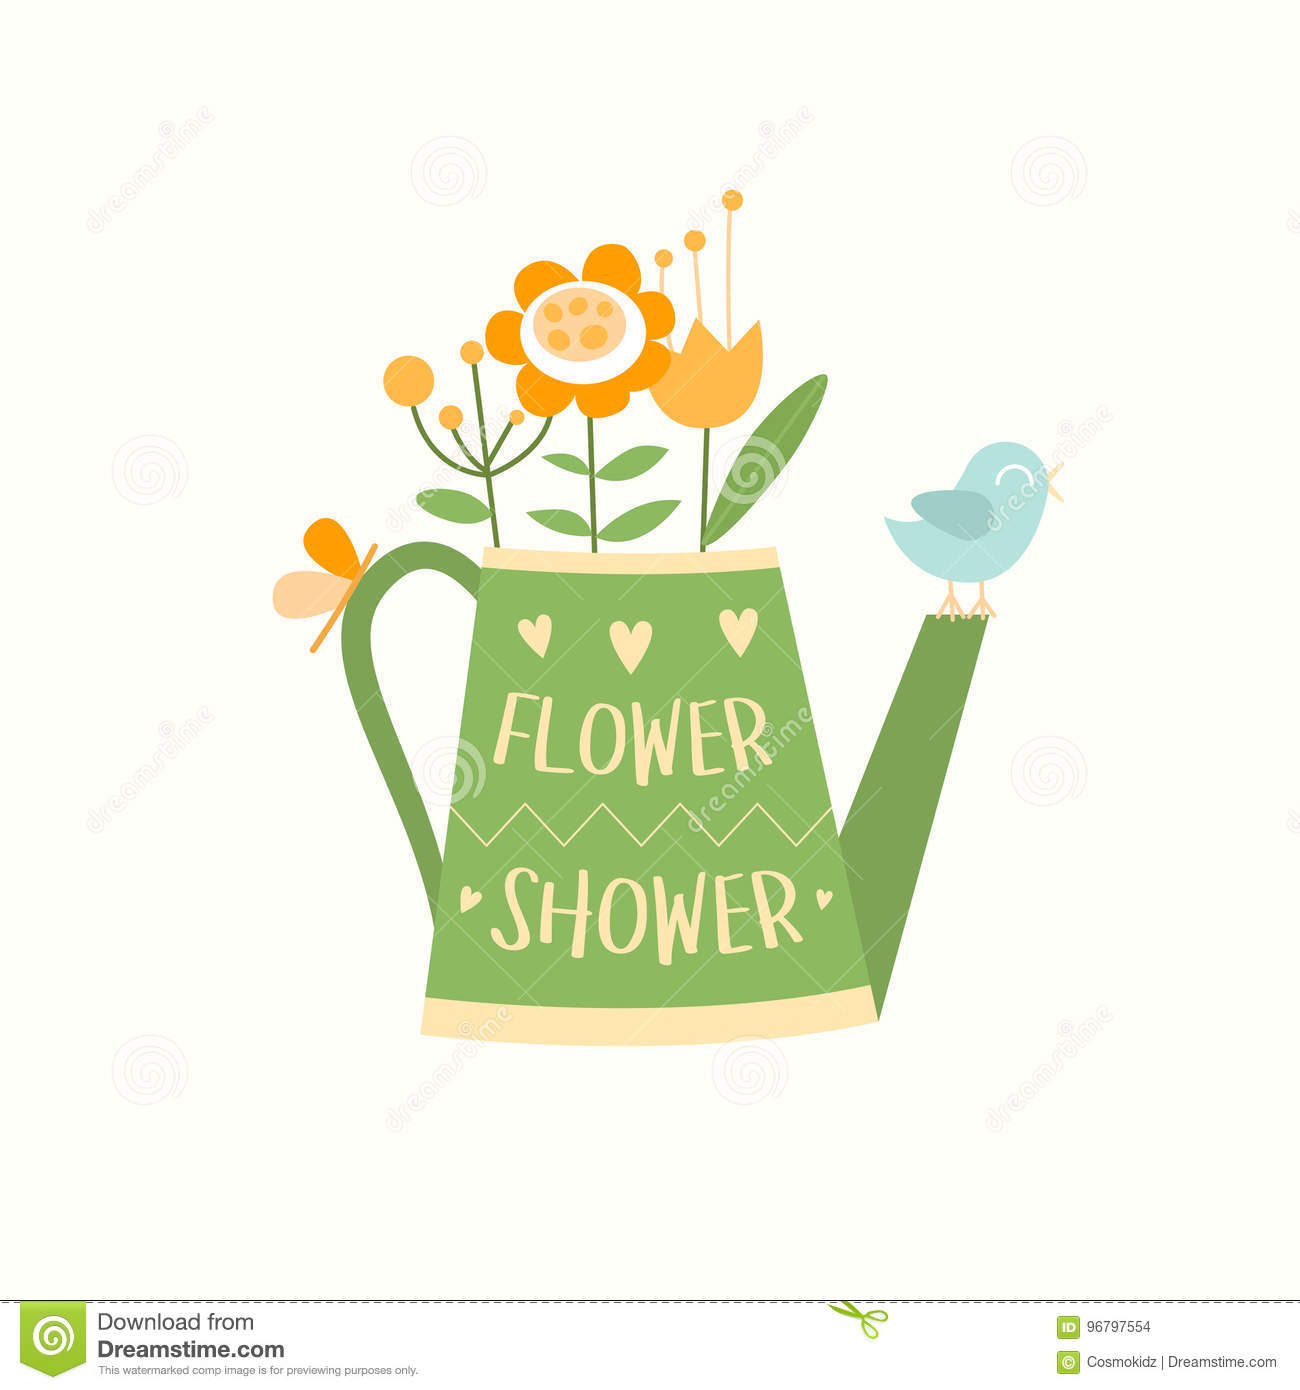 watering can with flowers bird and butterfly flower shop logotype